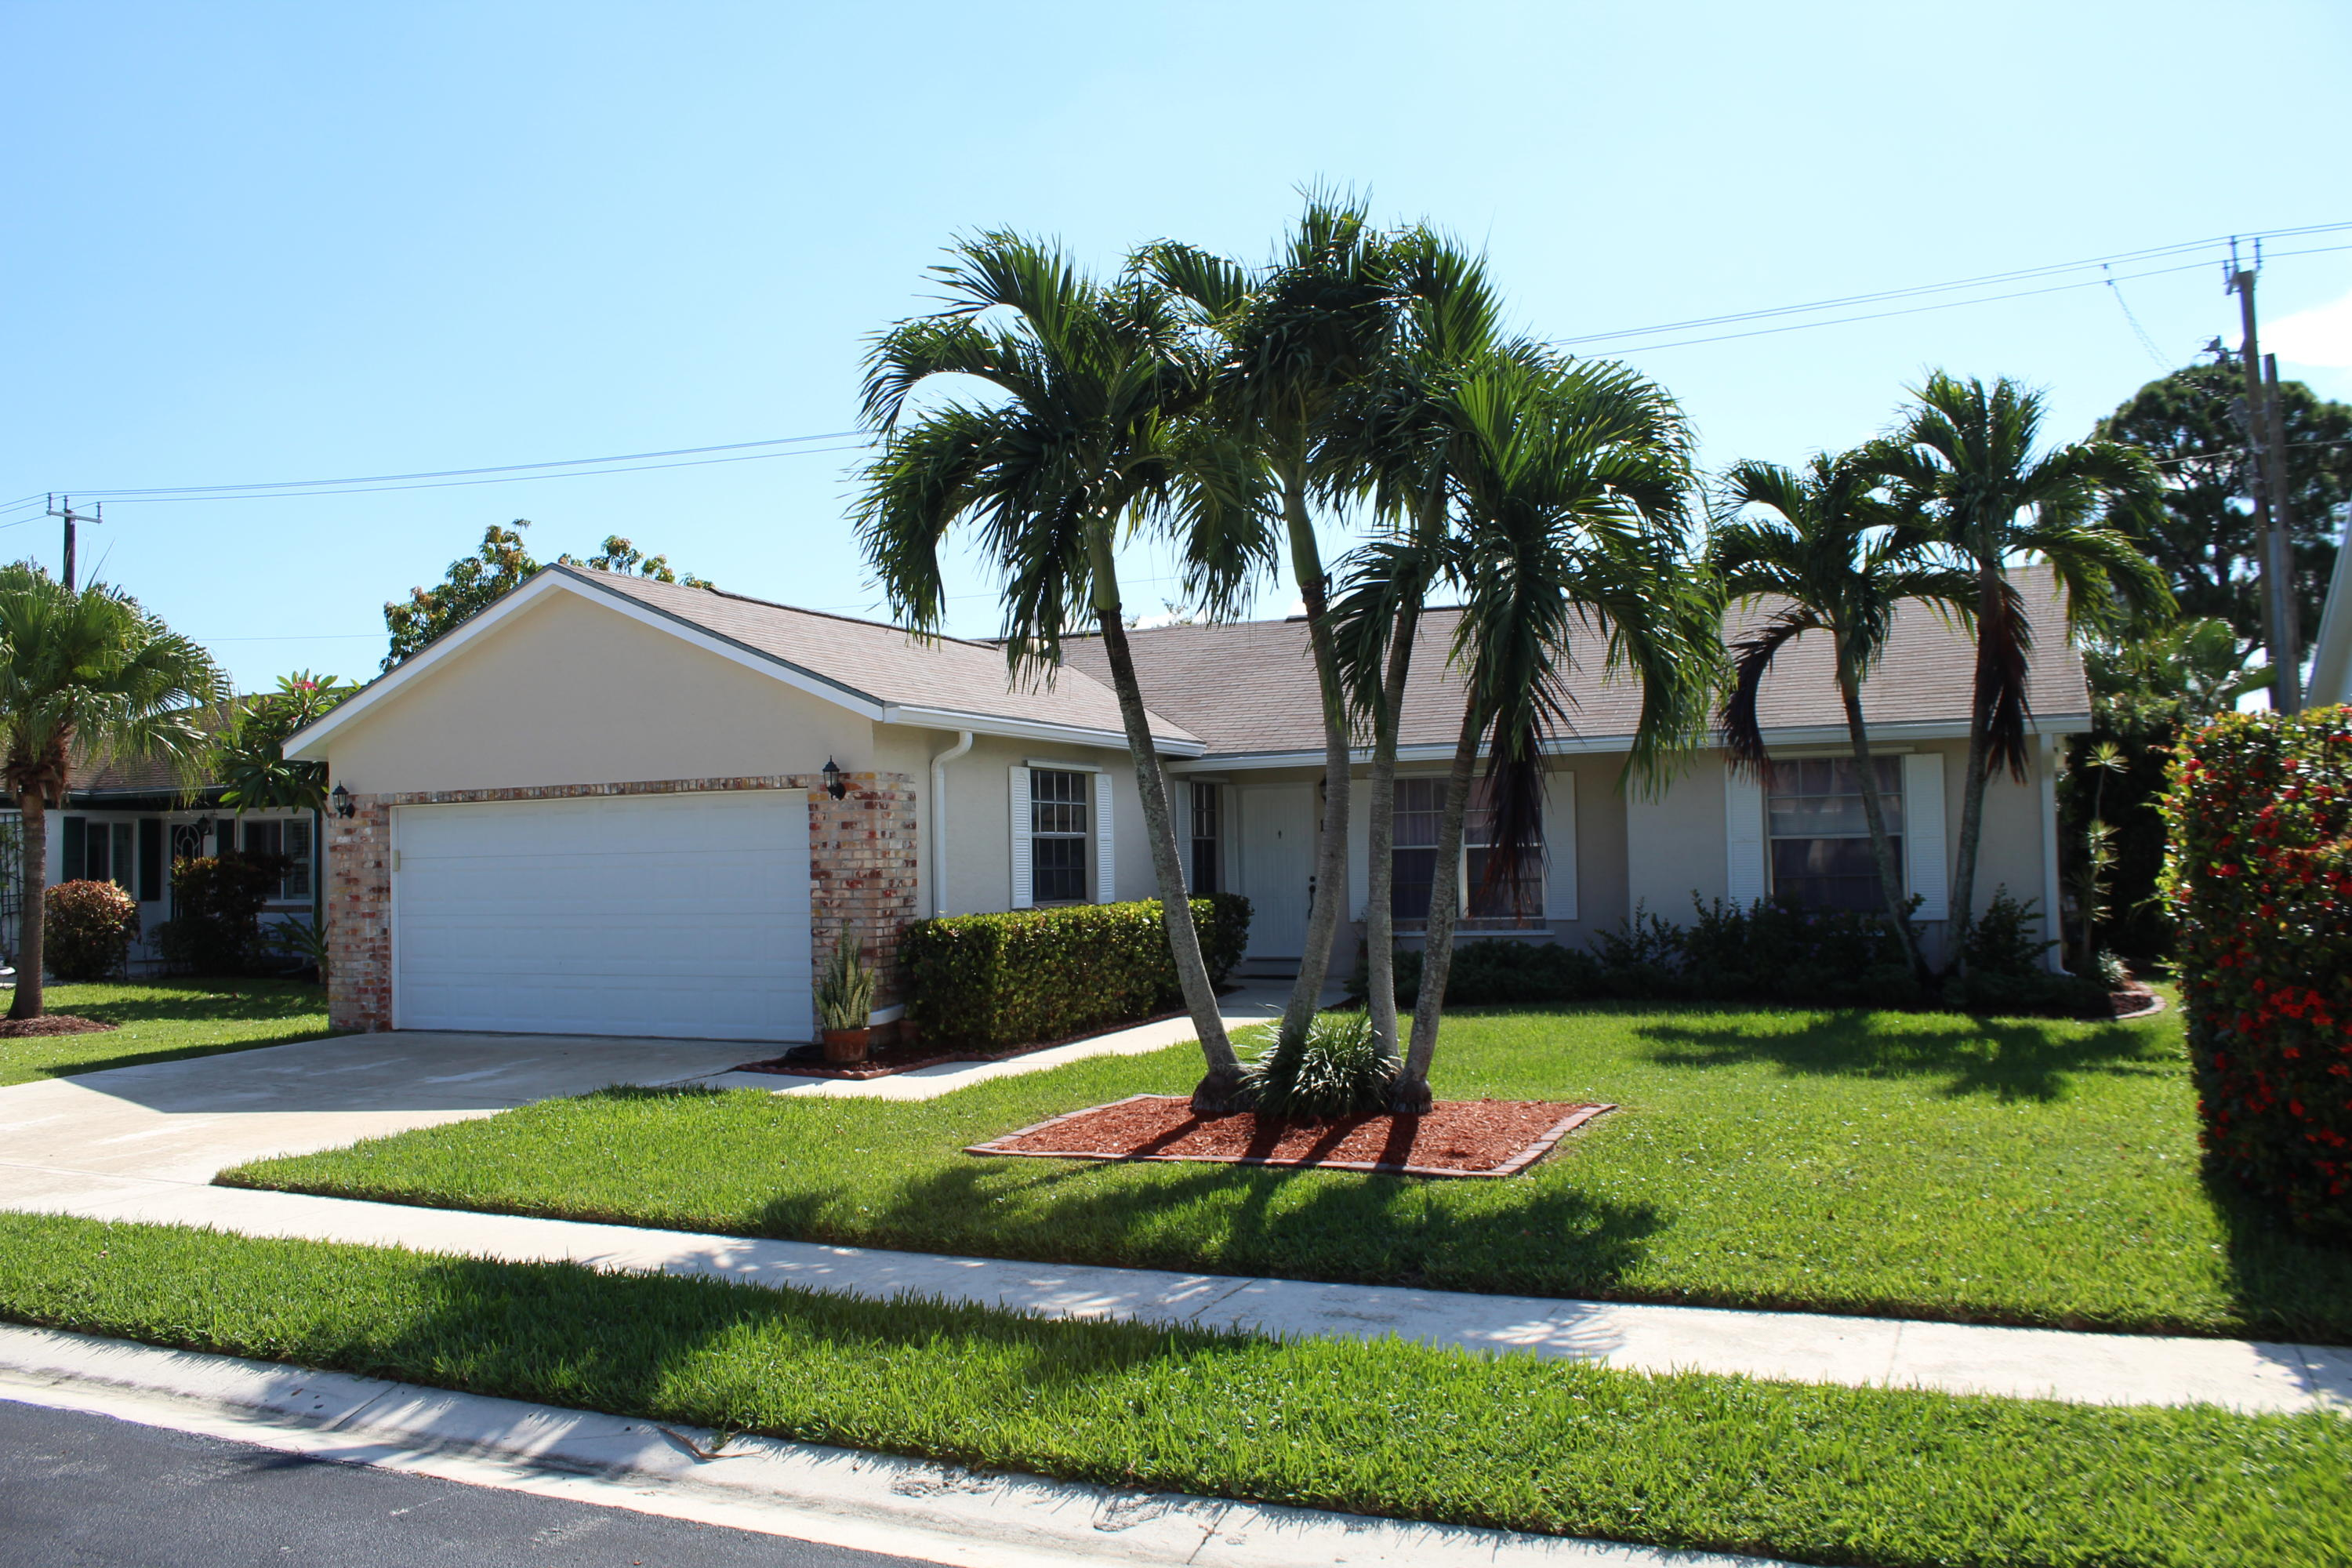 Meticulously kept 3 bedroom/2 bath CBS home. Tile throughout main living area with granite kitchen with stainless steel appliances. Fenced in yard with screened in patio. Community pool. AC is less than 1 year old. Close to everything, shops, restaurants, large park around the corner. Enjoy the beautiful town of Jupiter and its A rated school systems. Short ride to the peaceful beaches. Will be available to show after 8/3.